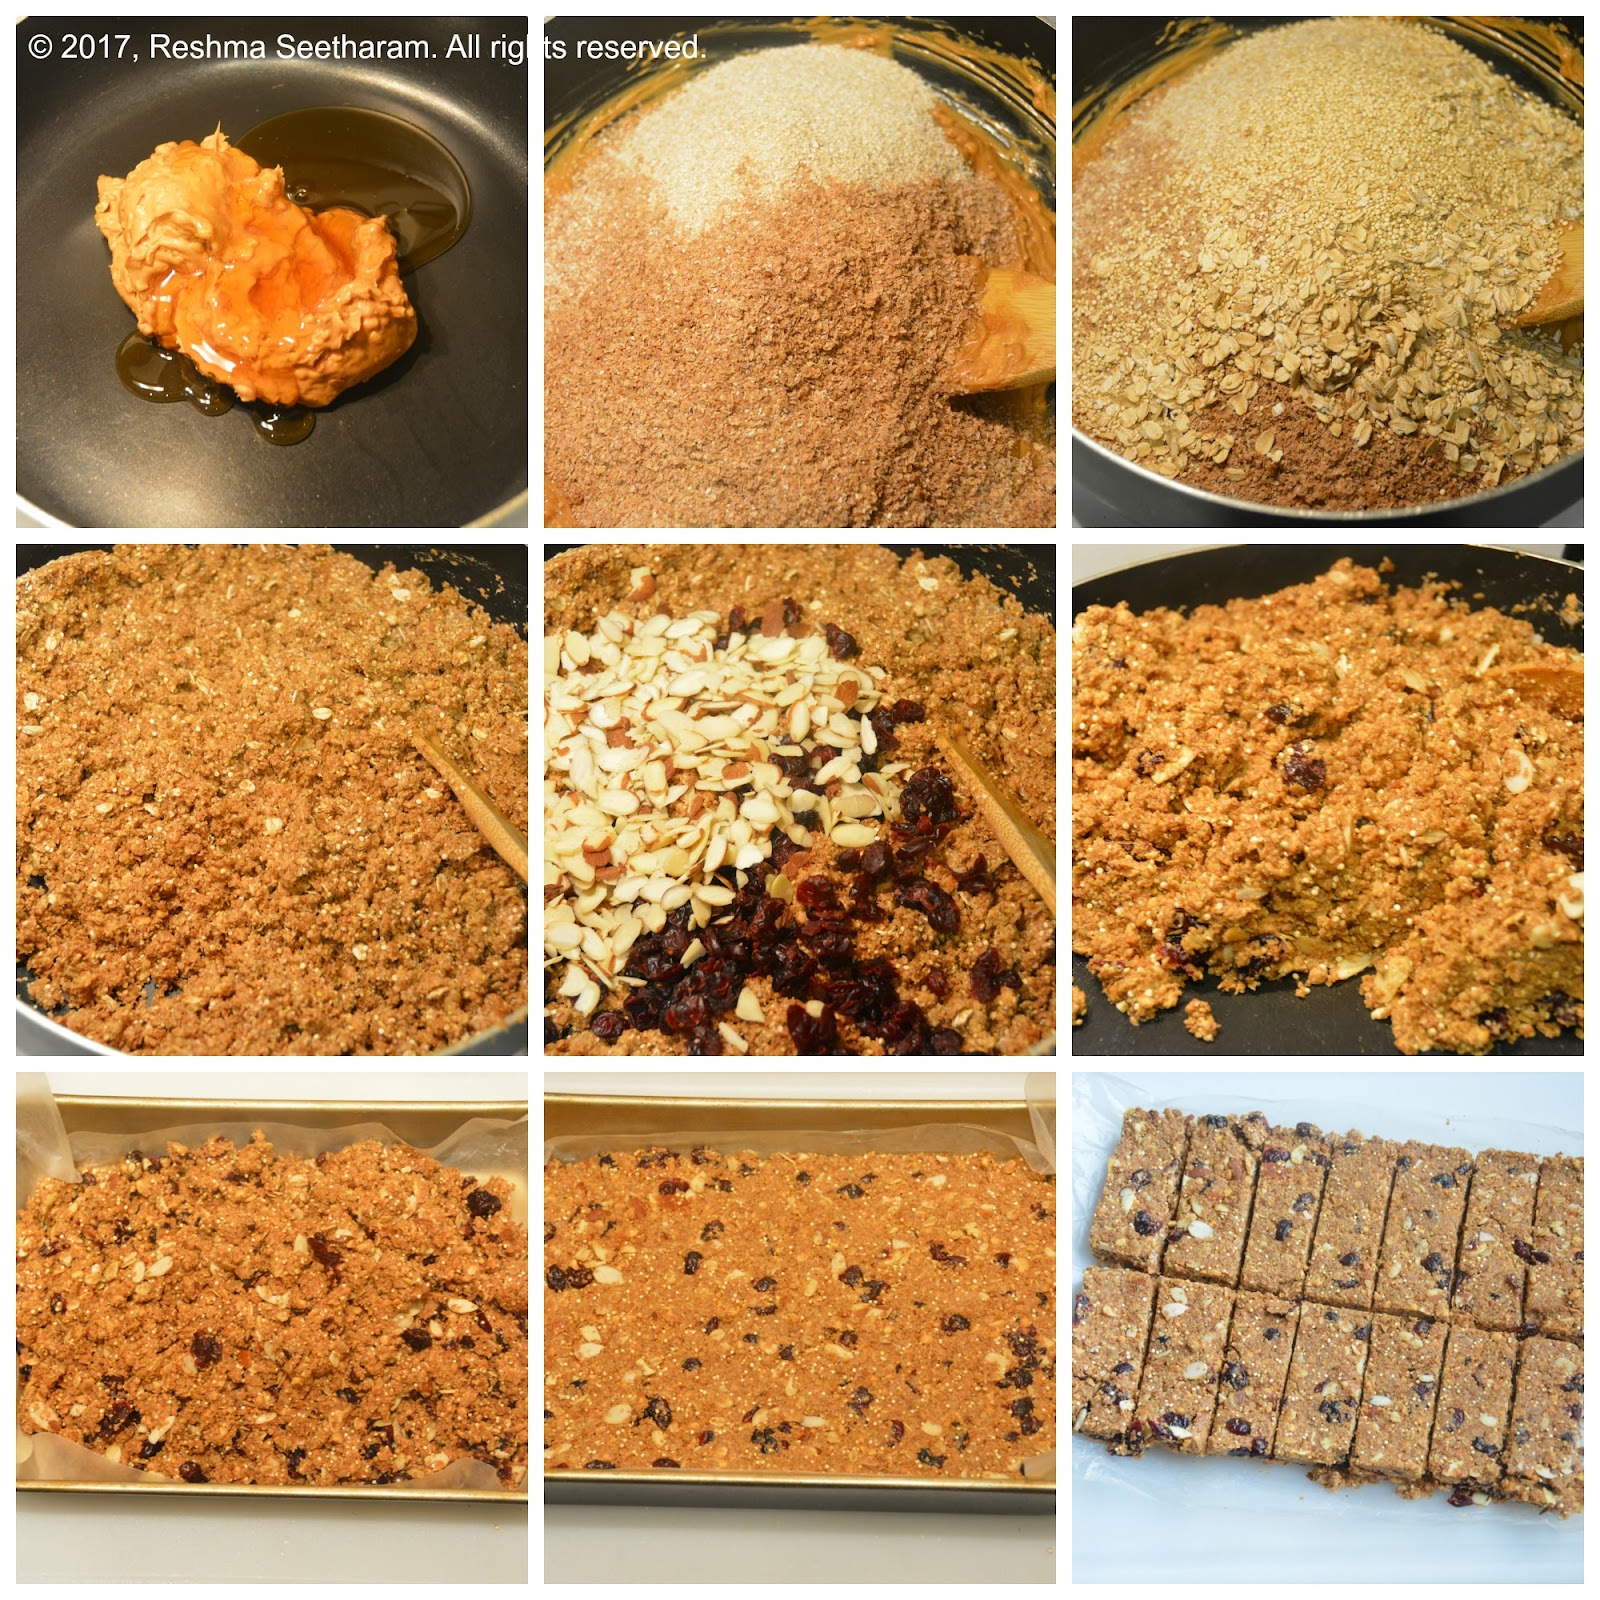 ... they melt together, add the roasted bran, quinoa and oats; Combine